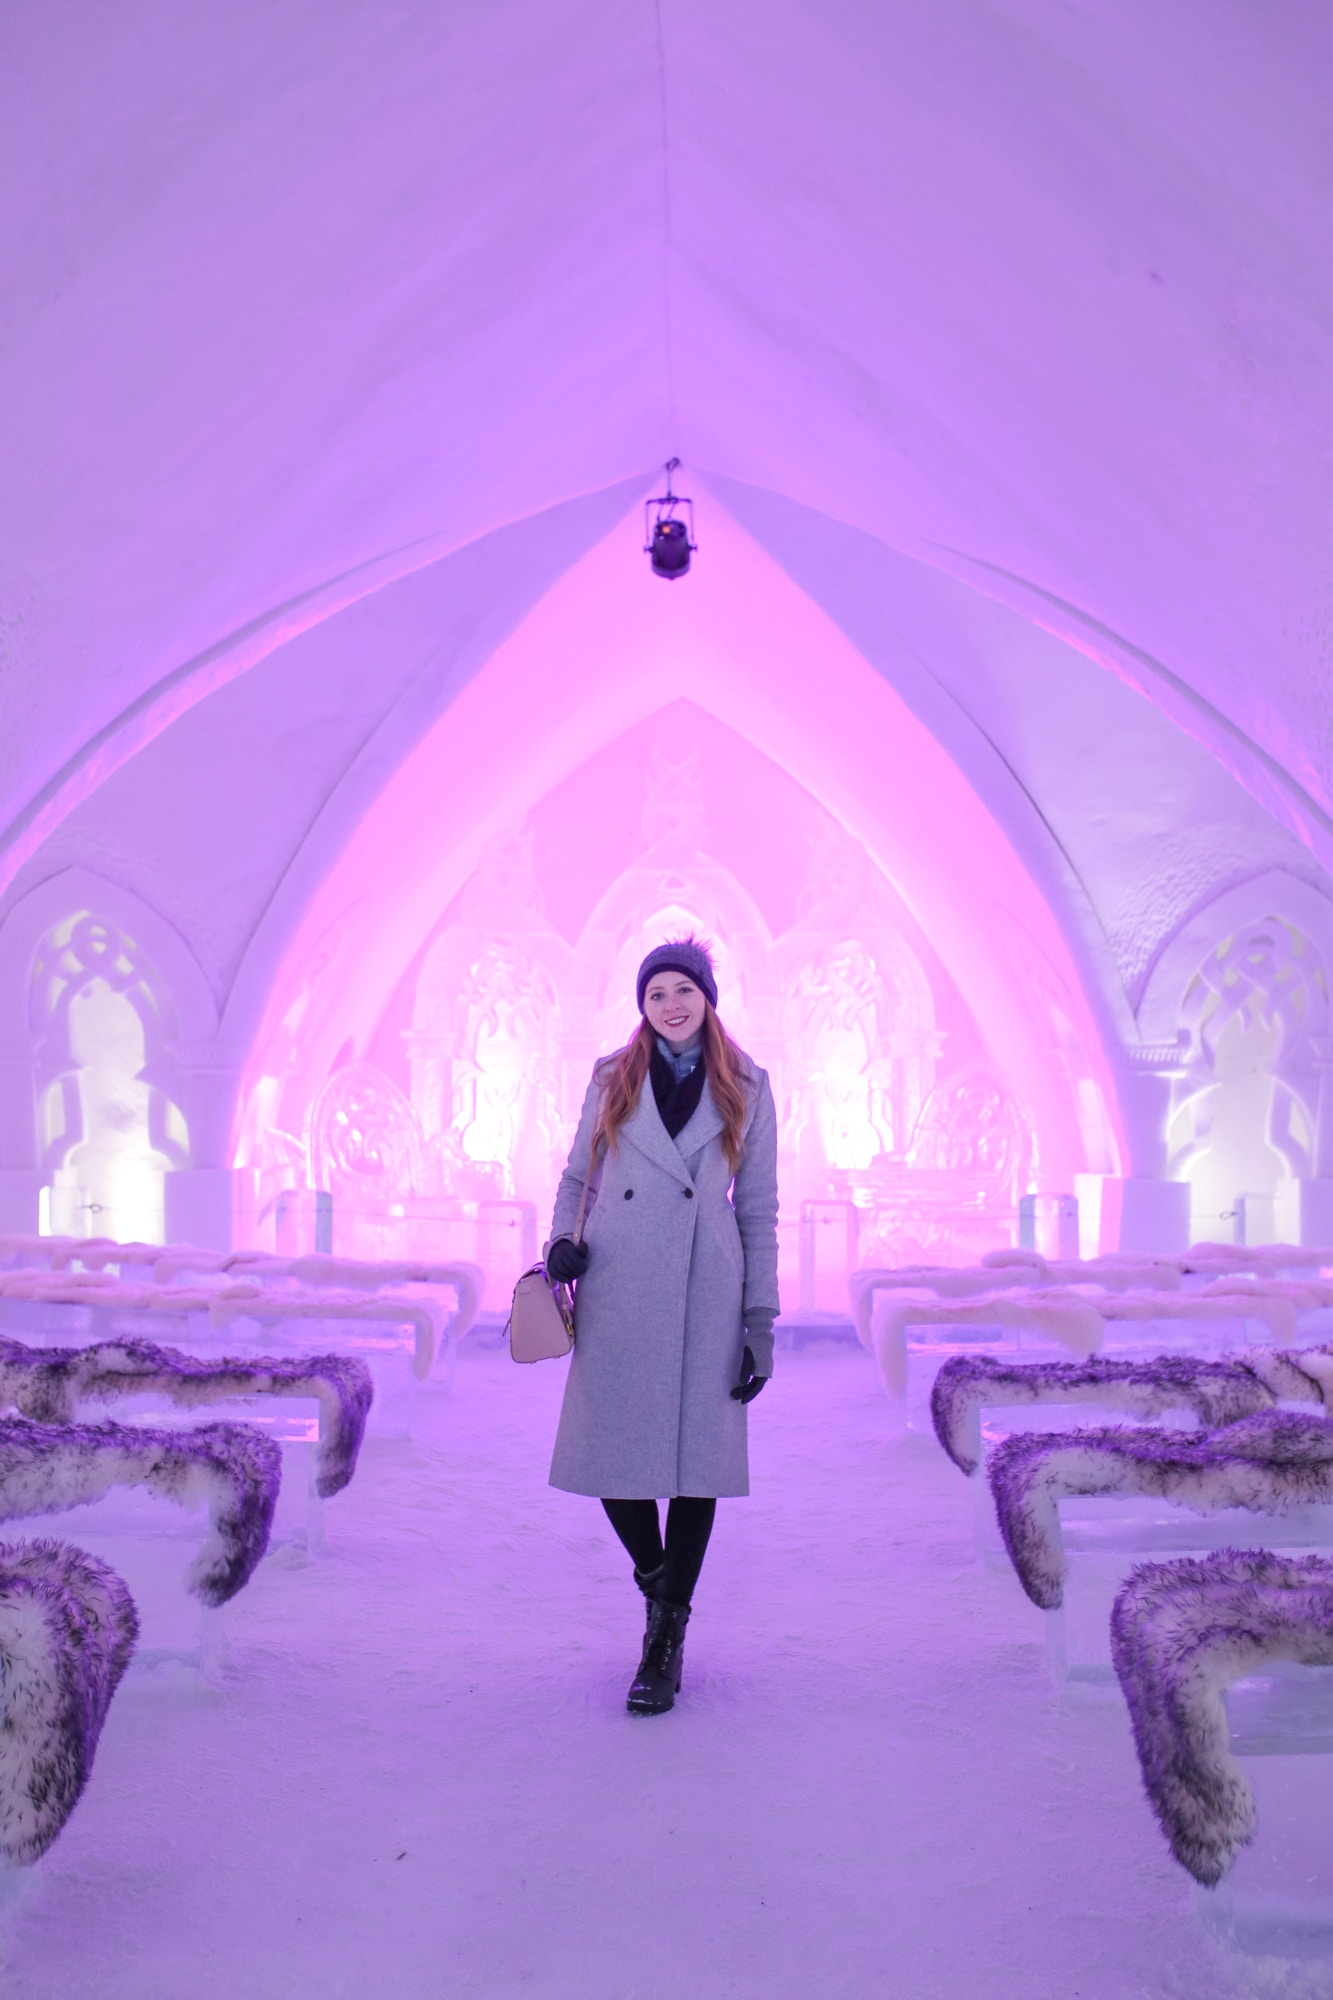 Hotel de Glâce in Valcartier near Quebec City is a must-see. This chapel is made entirely of ice and snow, and is so beautiful with LED lights and cozy fur seats.